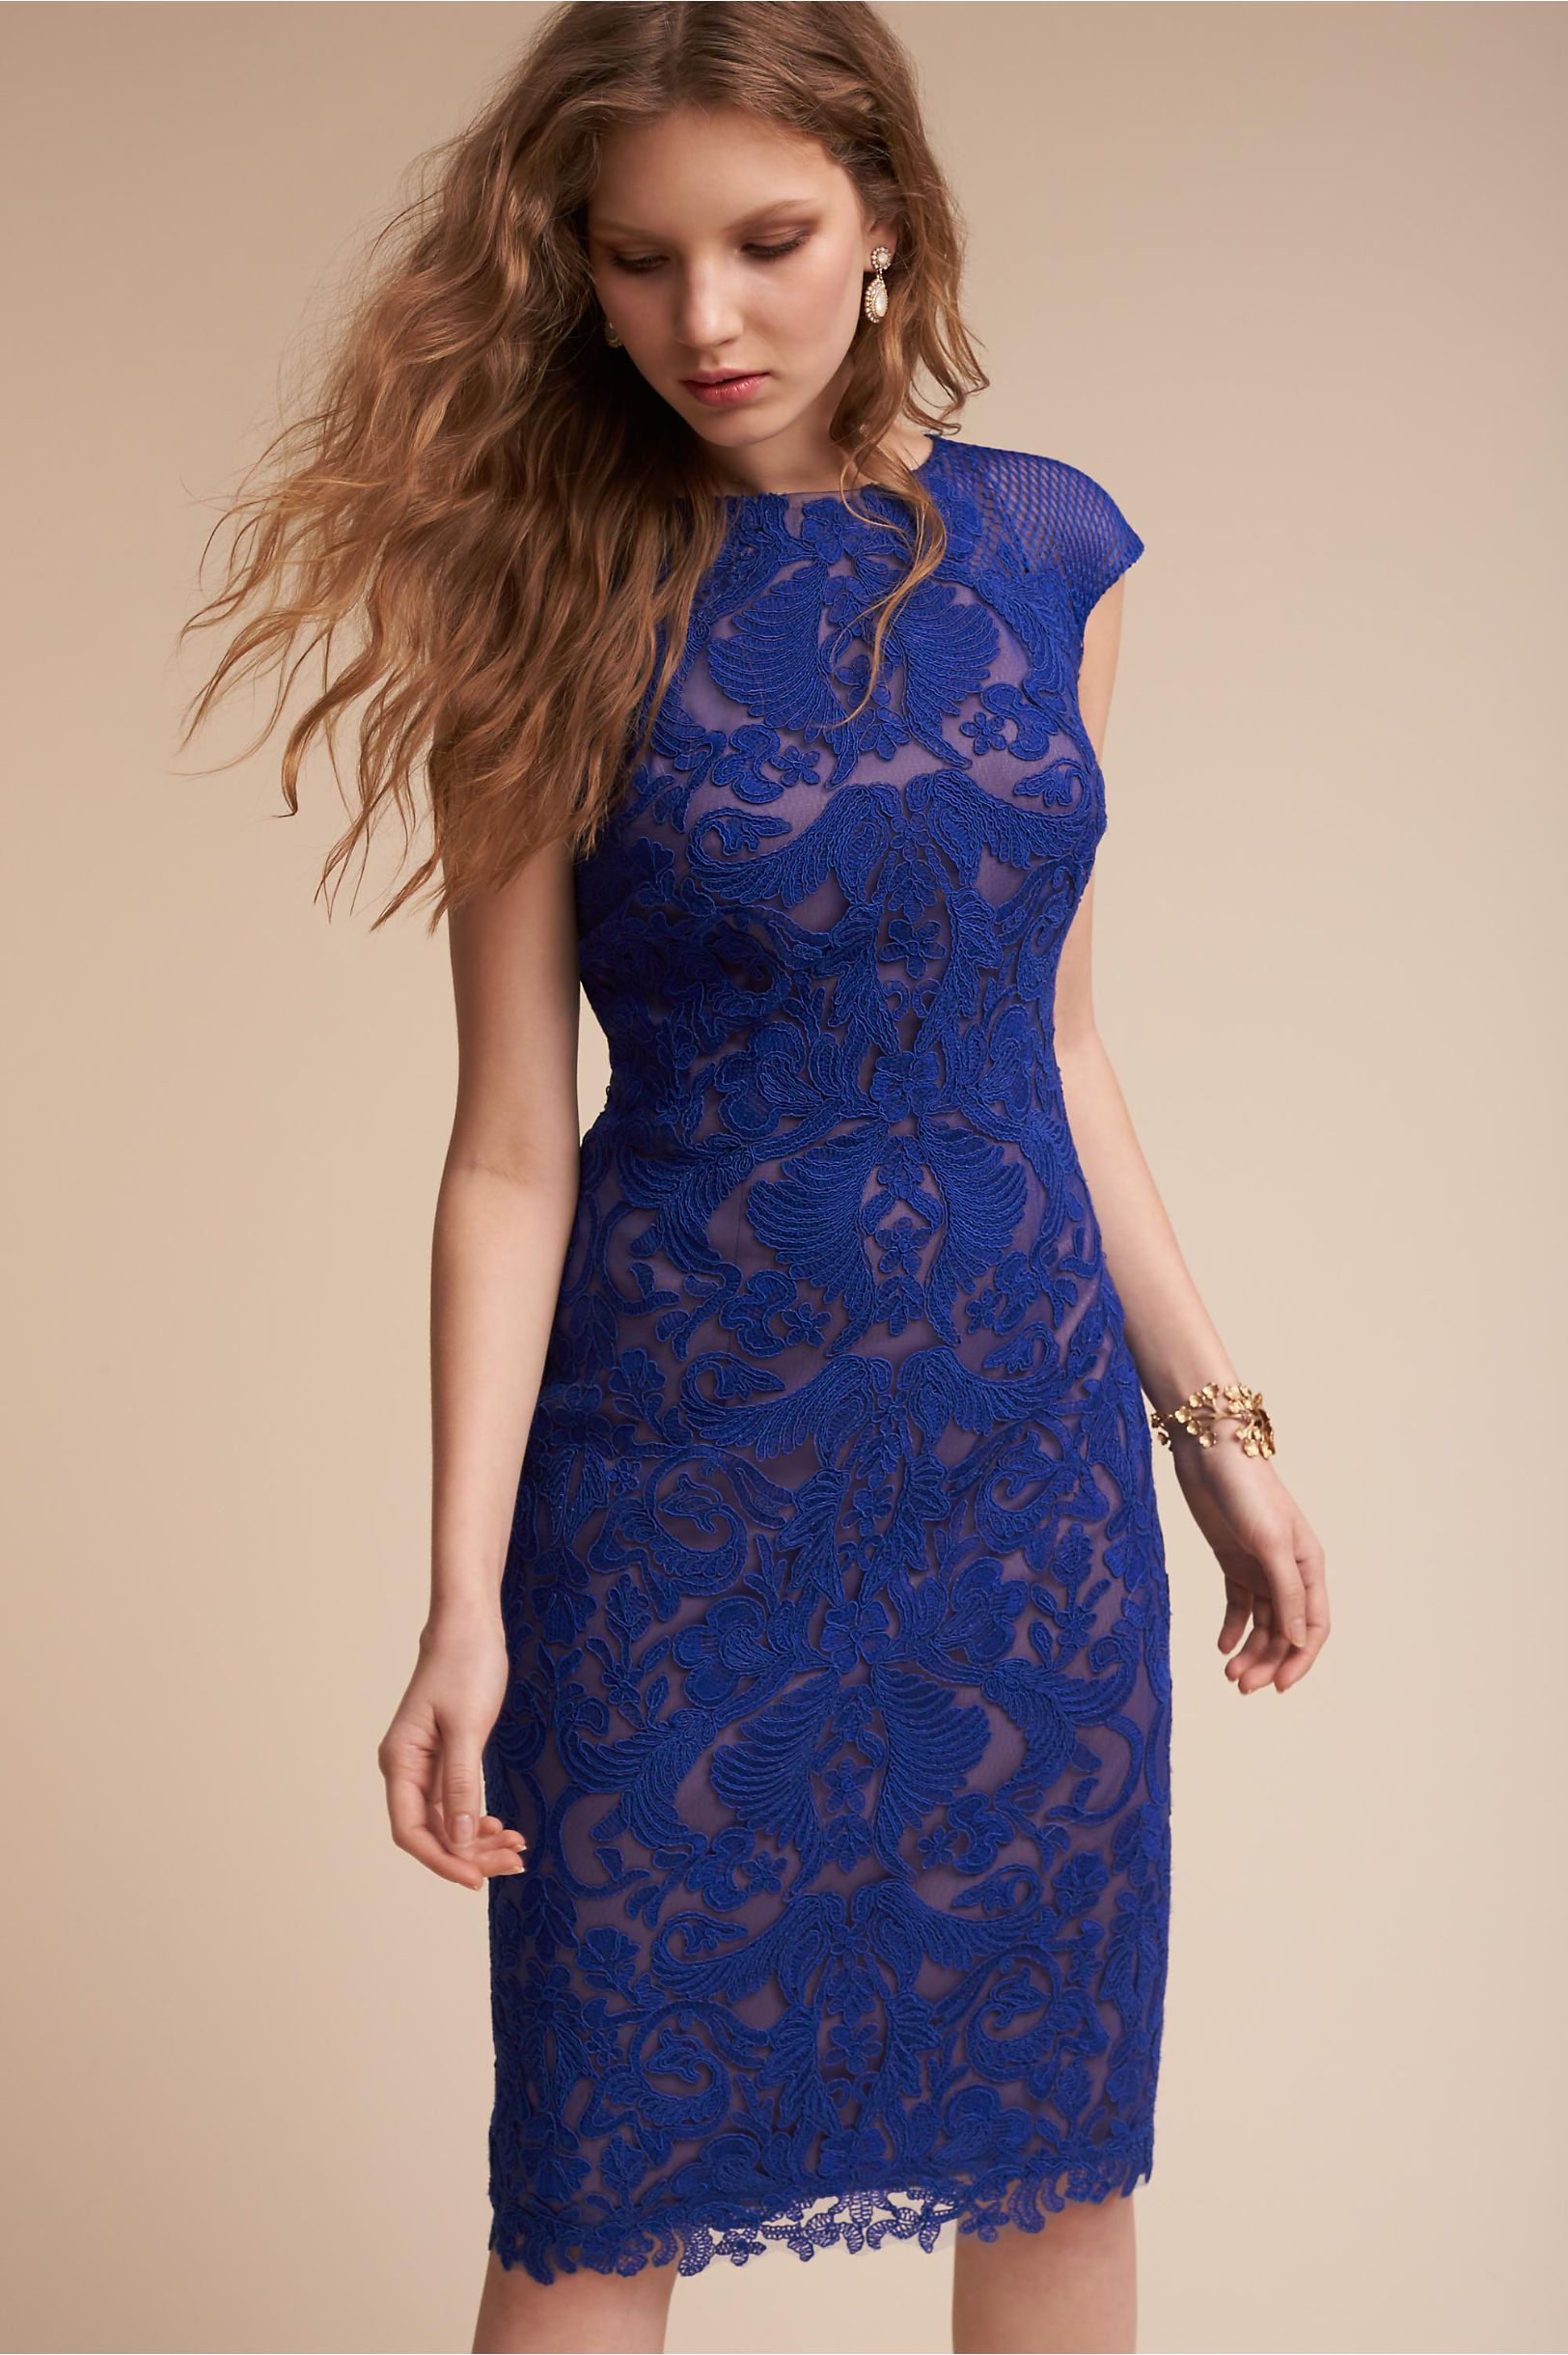 Royal blue dress for wedding guest  BHLDN Micha Dress in Bridal Party Mother of the Bride  BHLDN  Mark